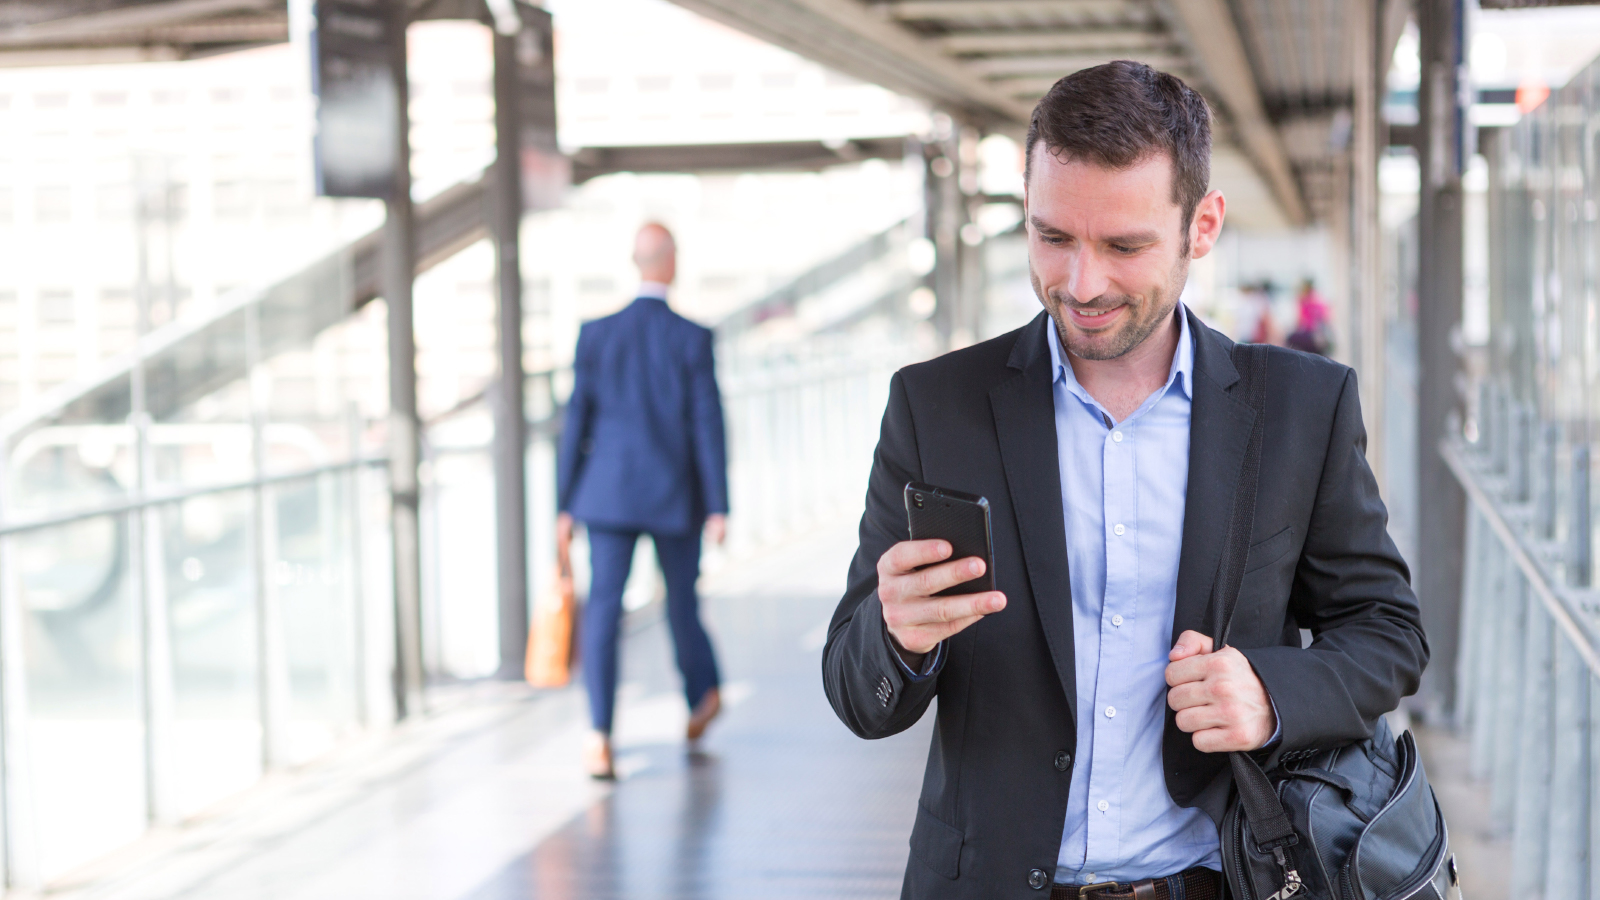 business man walking while looking at mobile phone